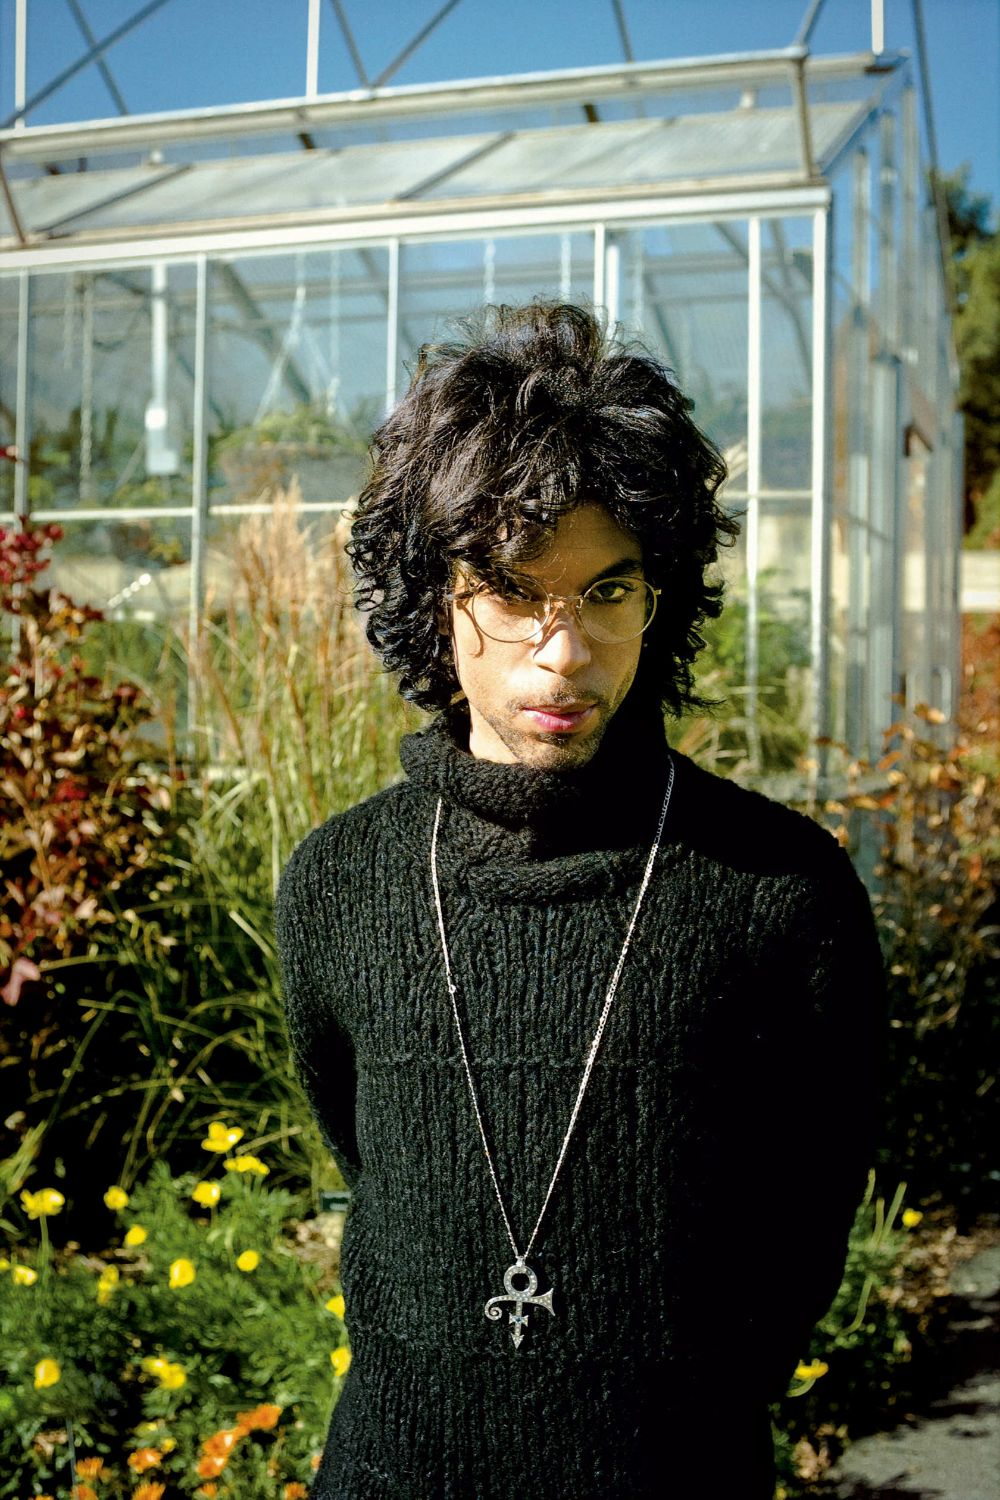 Lost Prince Rare And Stunning Intimate Graphs Taken His Private